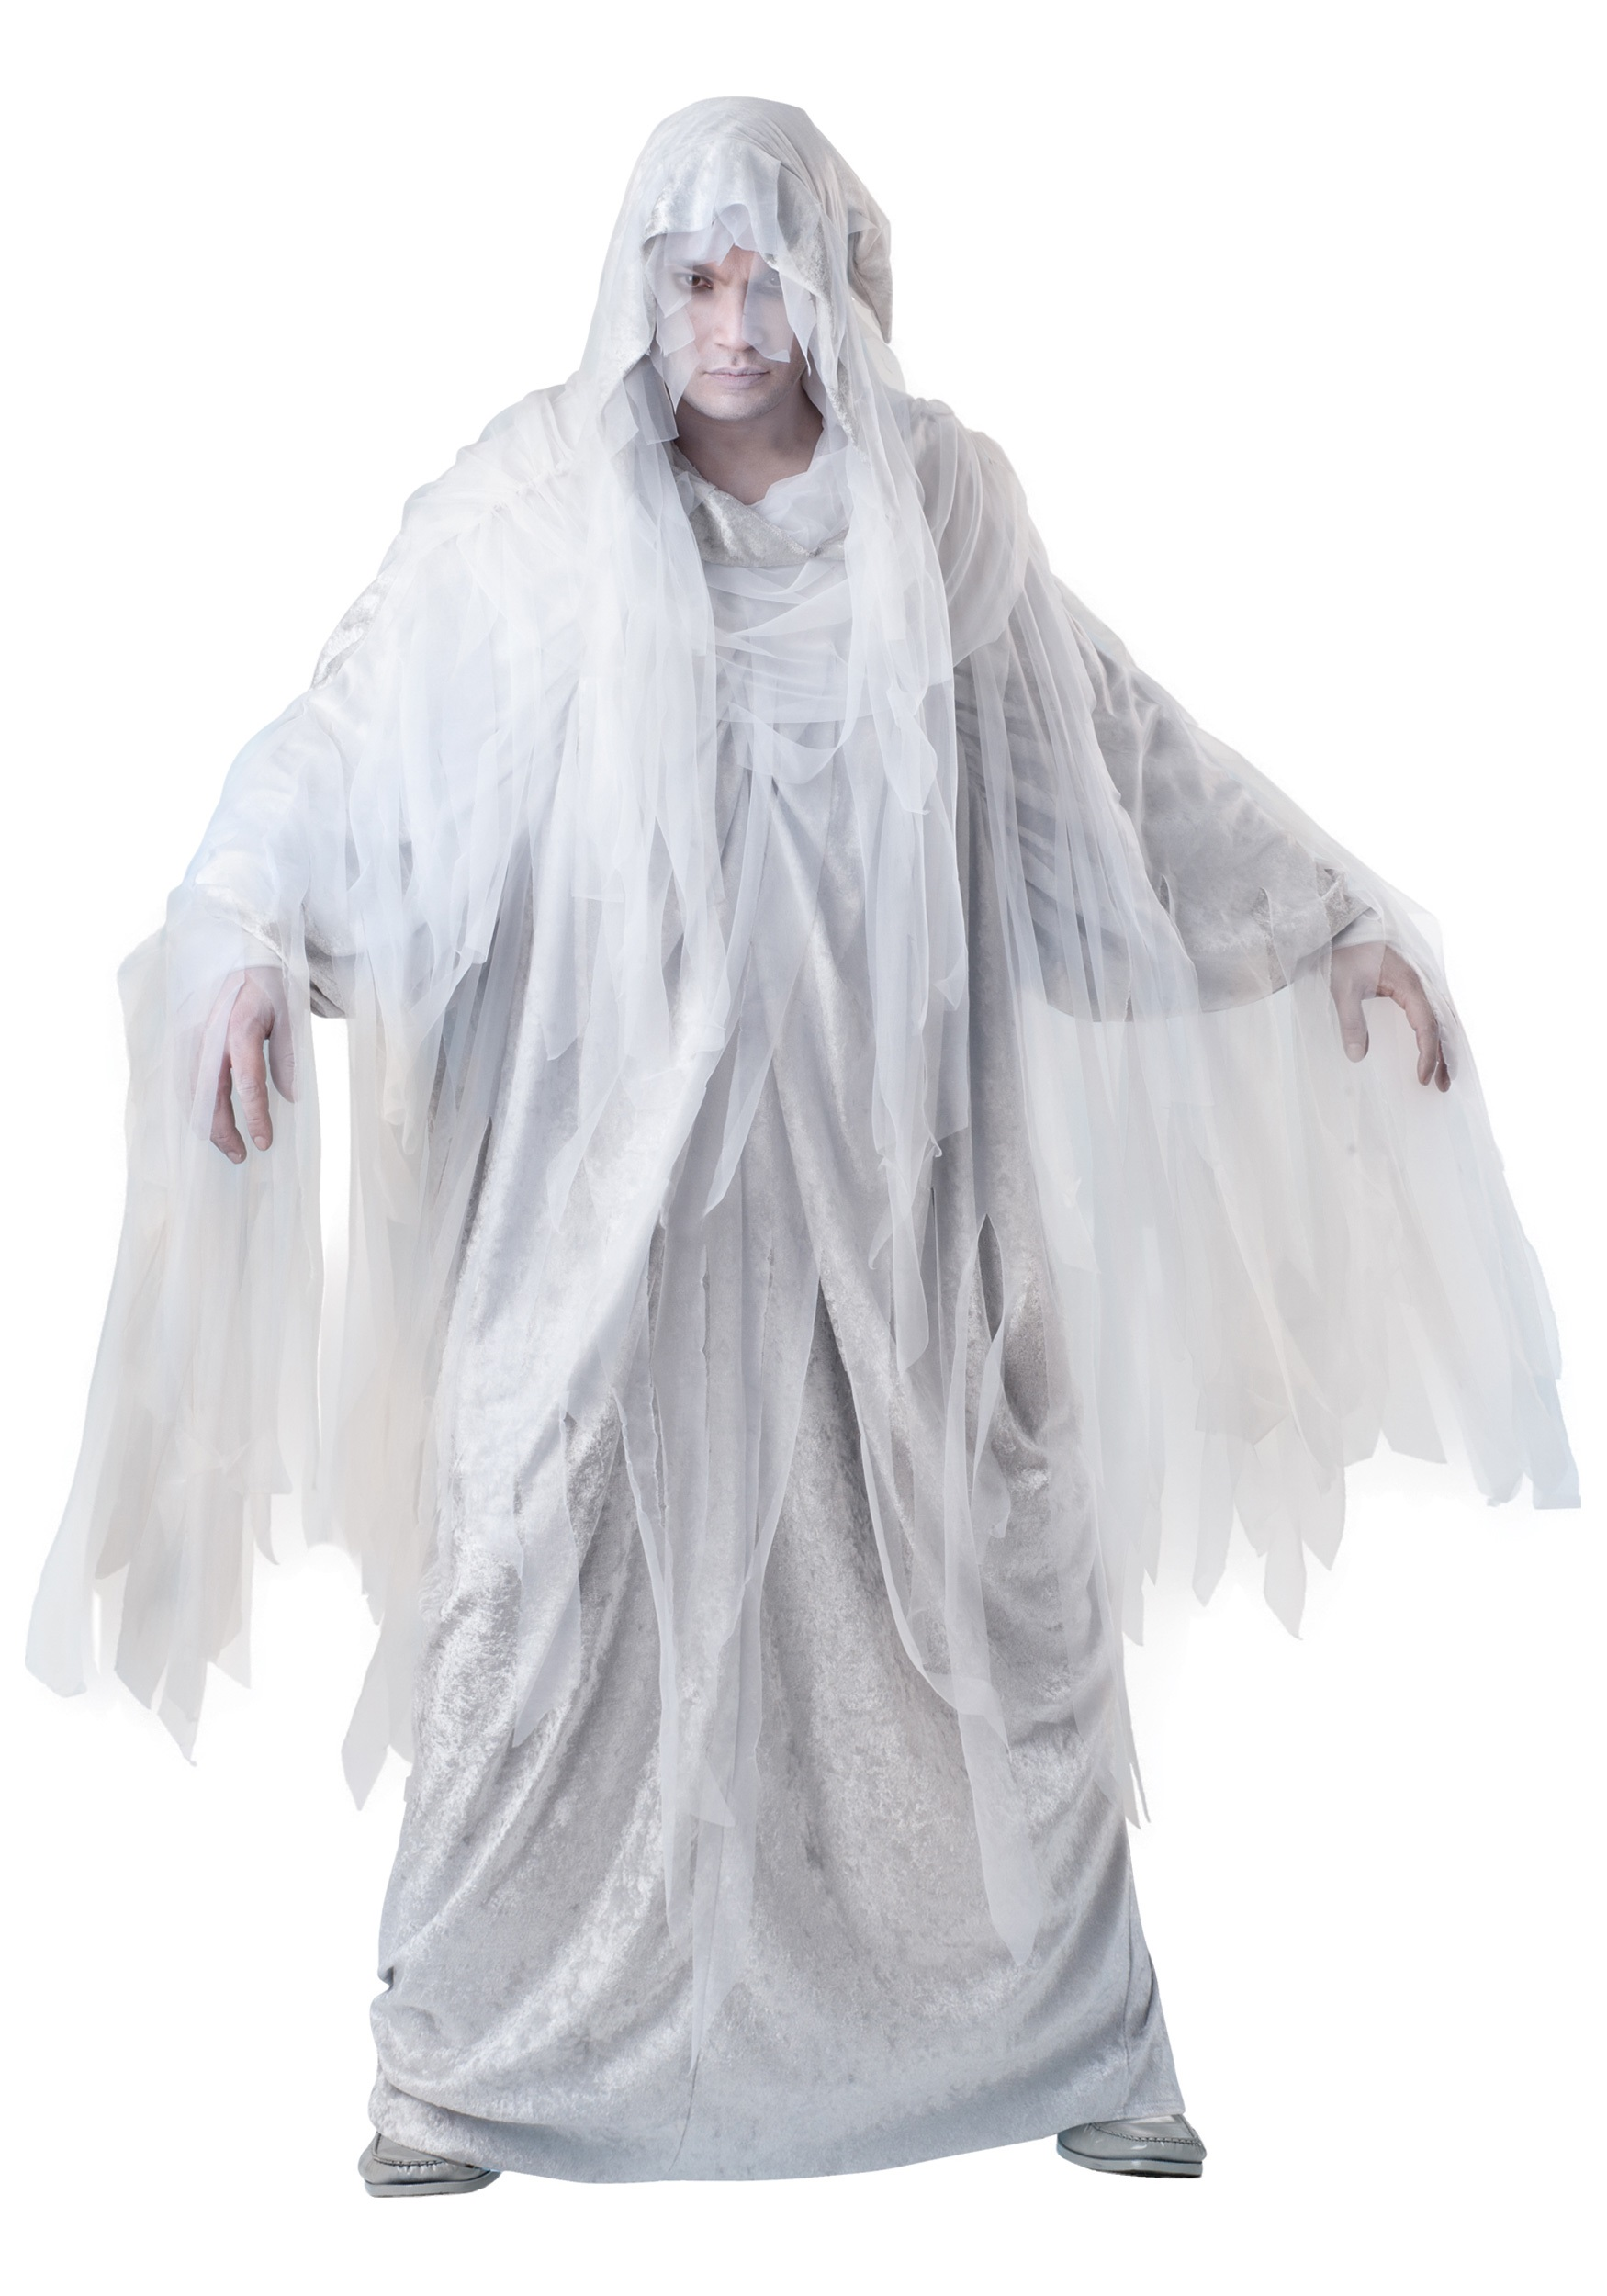 Haunting Spirit Costume  sc 1 st  Halloween Costumes : halloween costumes at spirit  - Germanpascual.Com